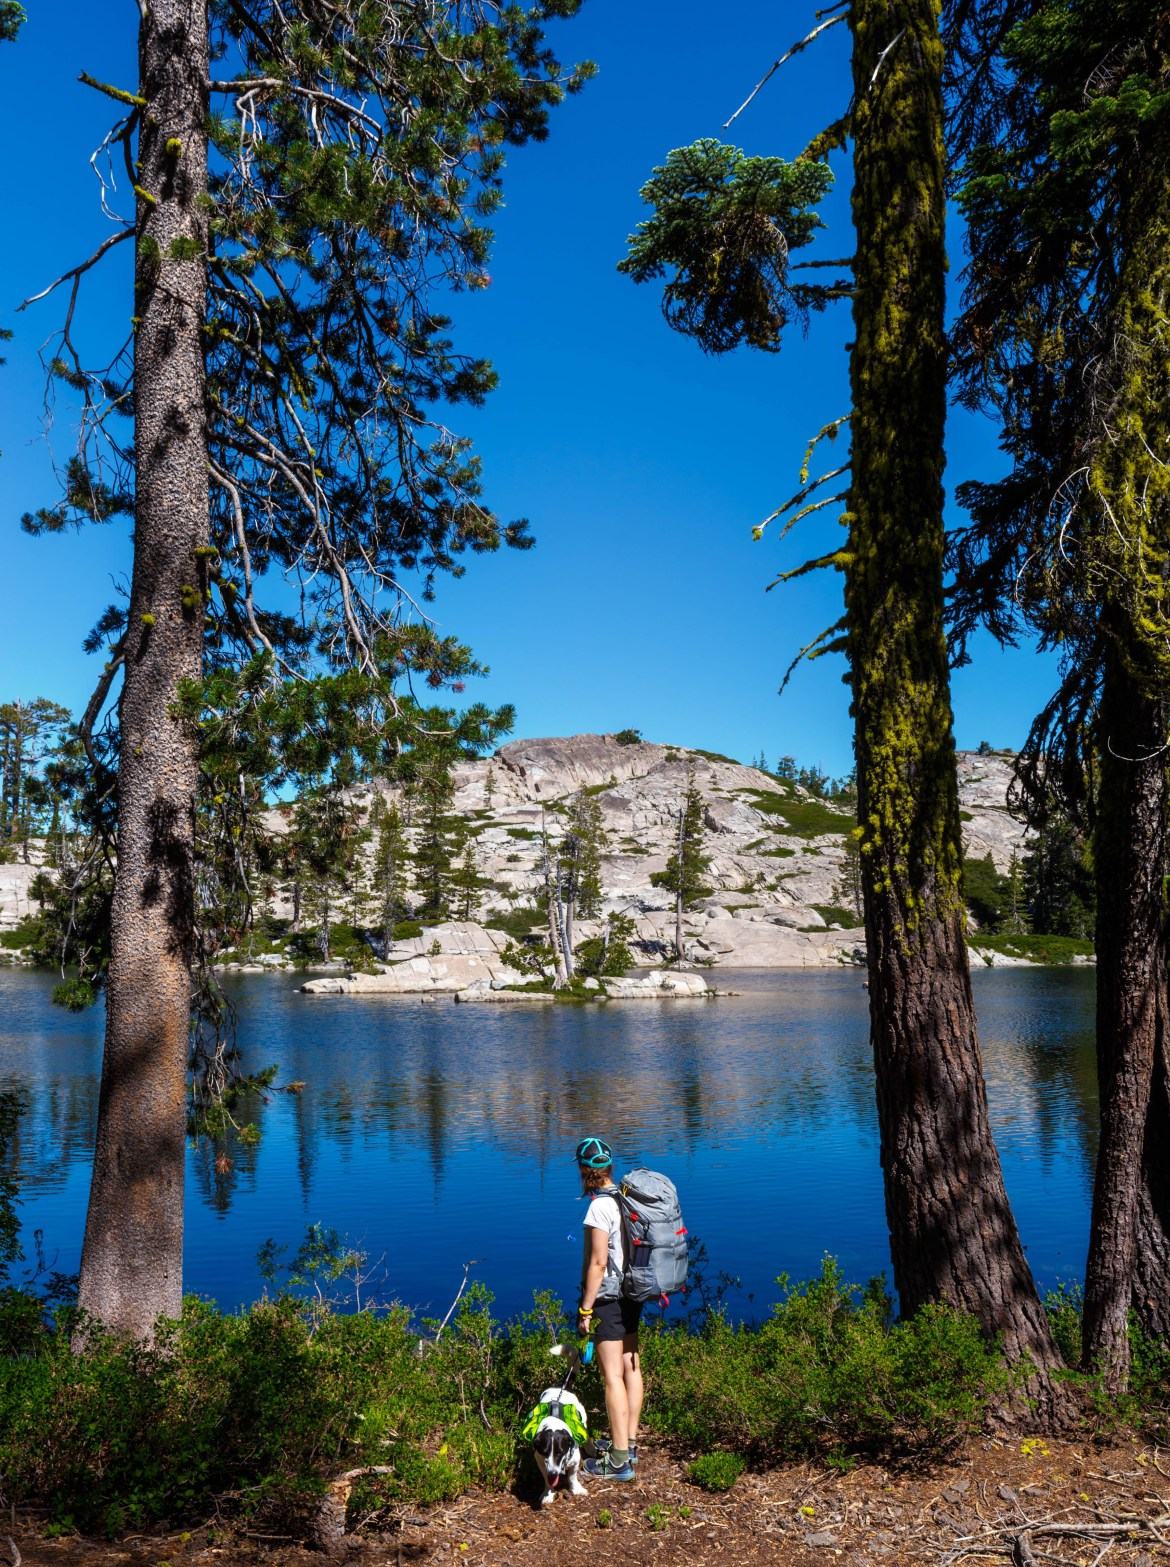 hiking with a dog at the best lake tahoe campsite, loch leven